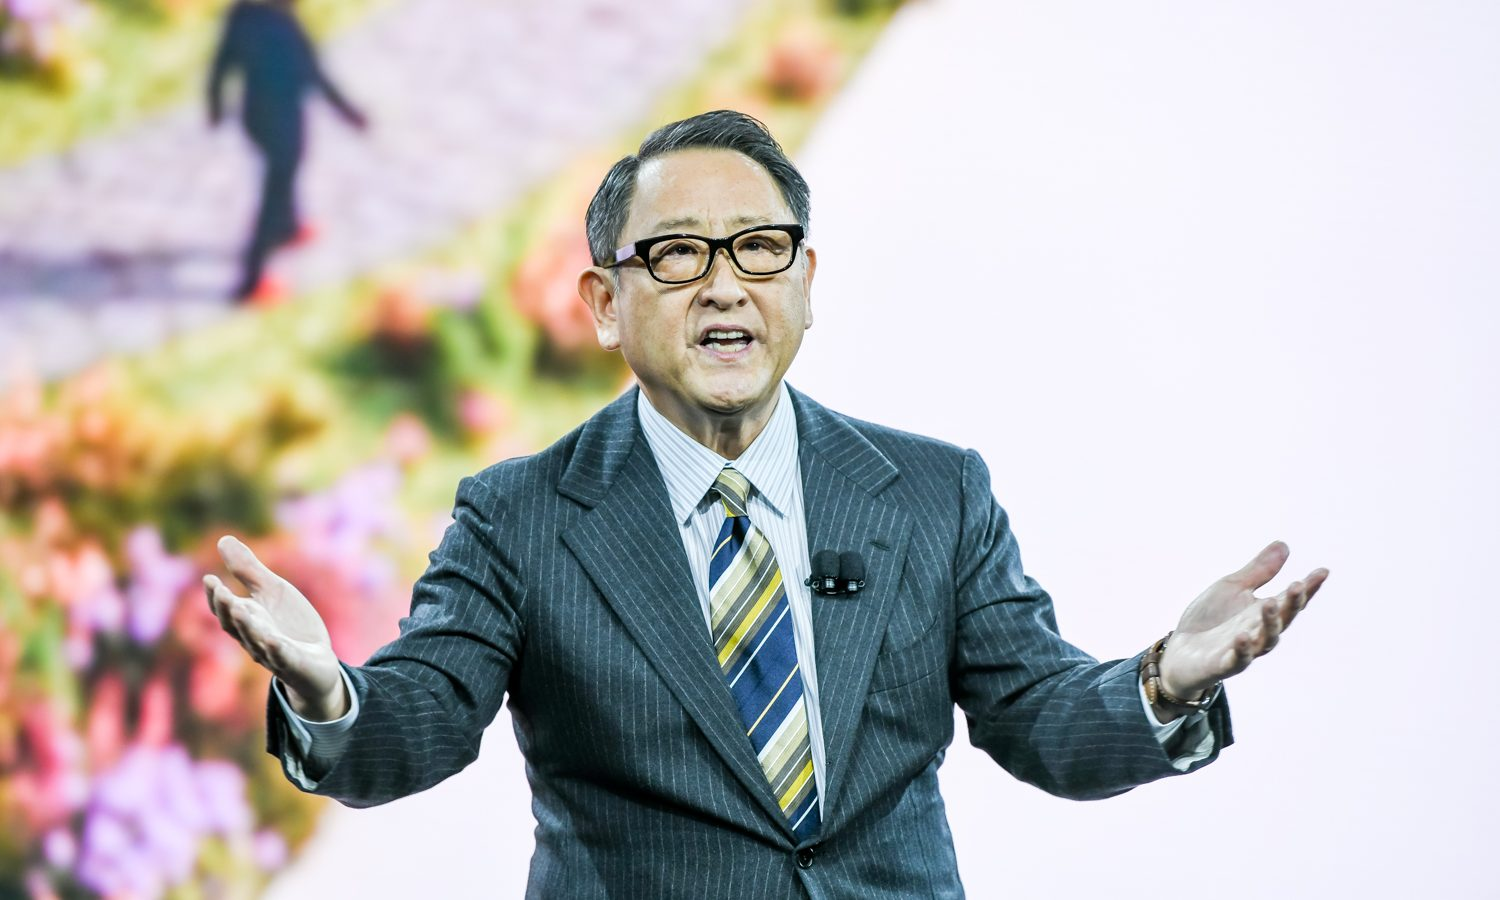 2020 Consumer Electronic Show: Toyota Press Conference, Akio Toyoda and Bjarke Ingels Remarks